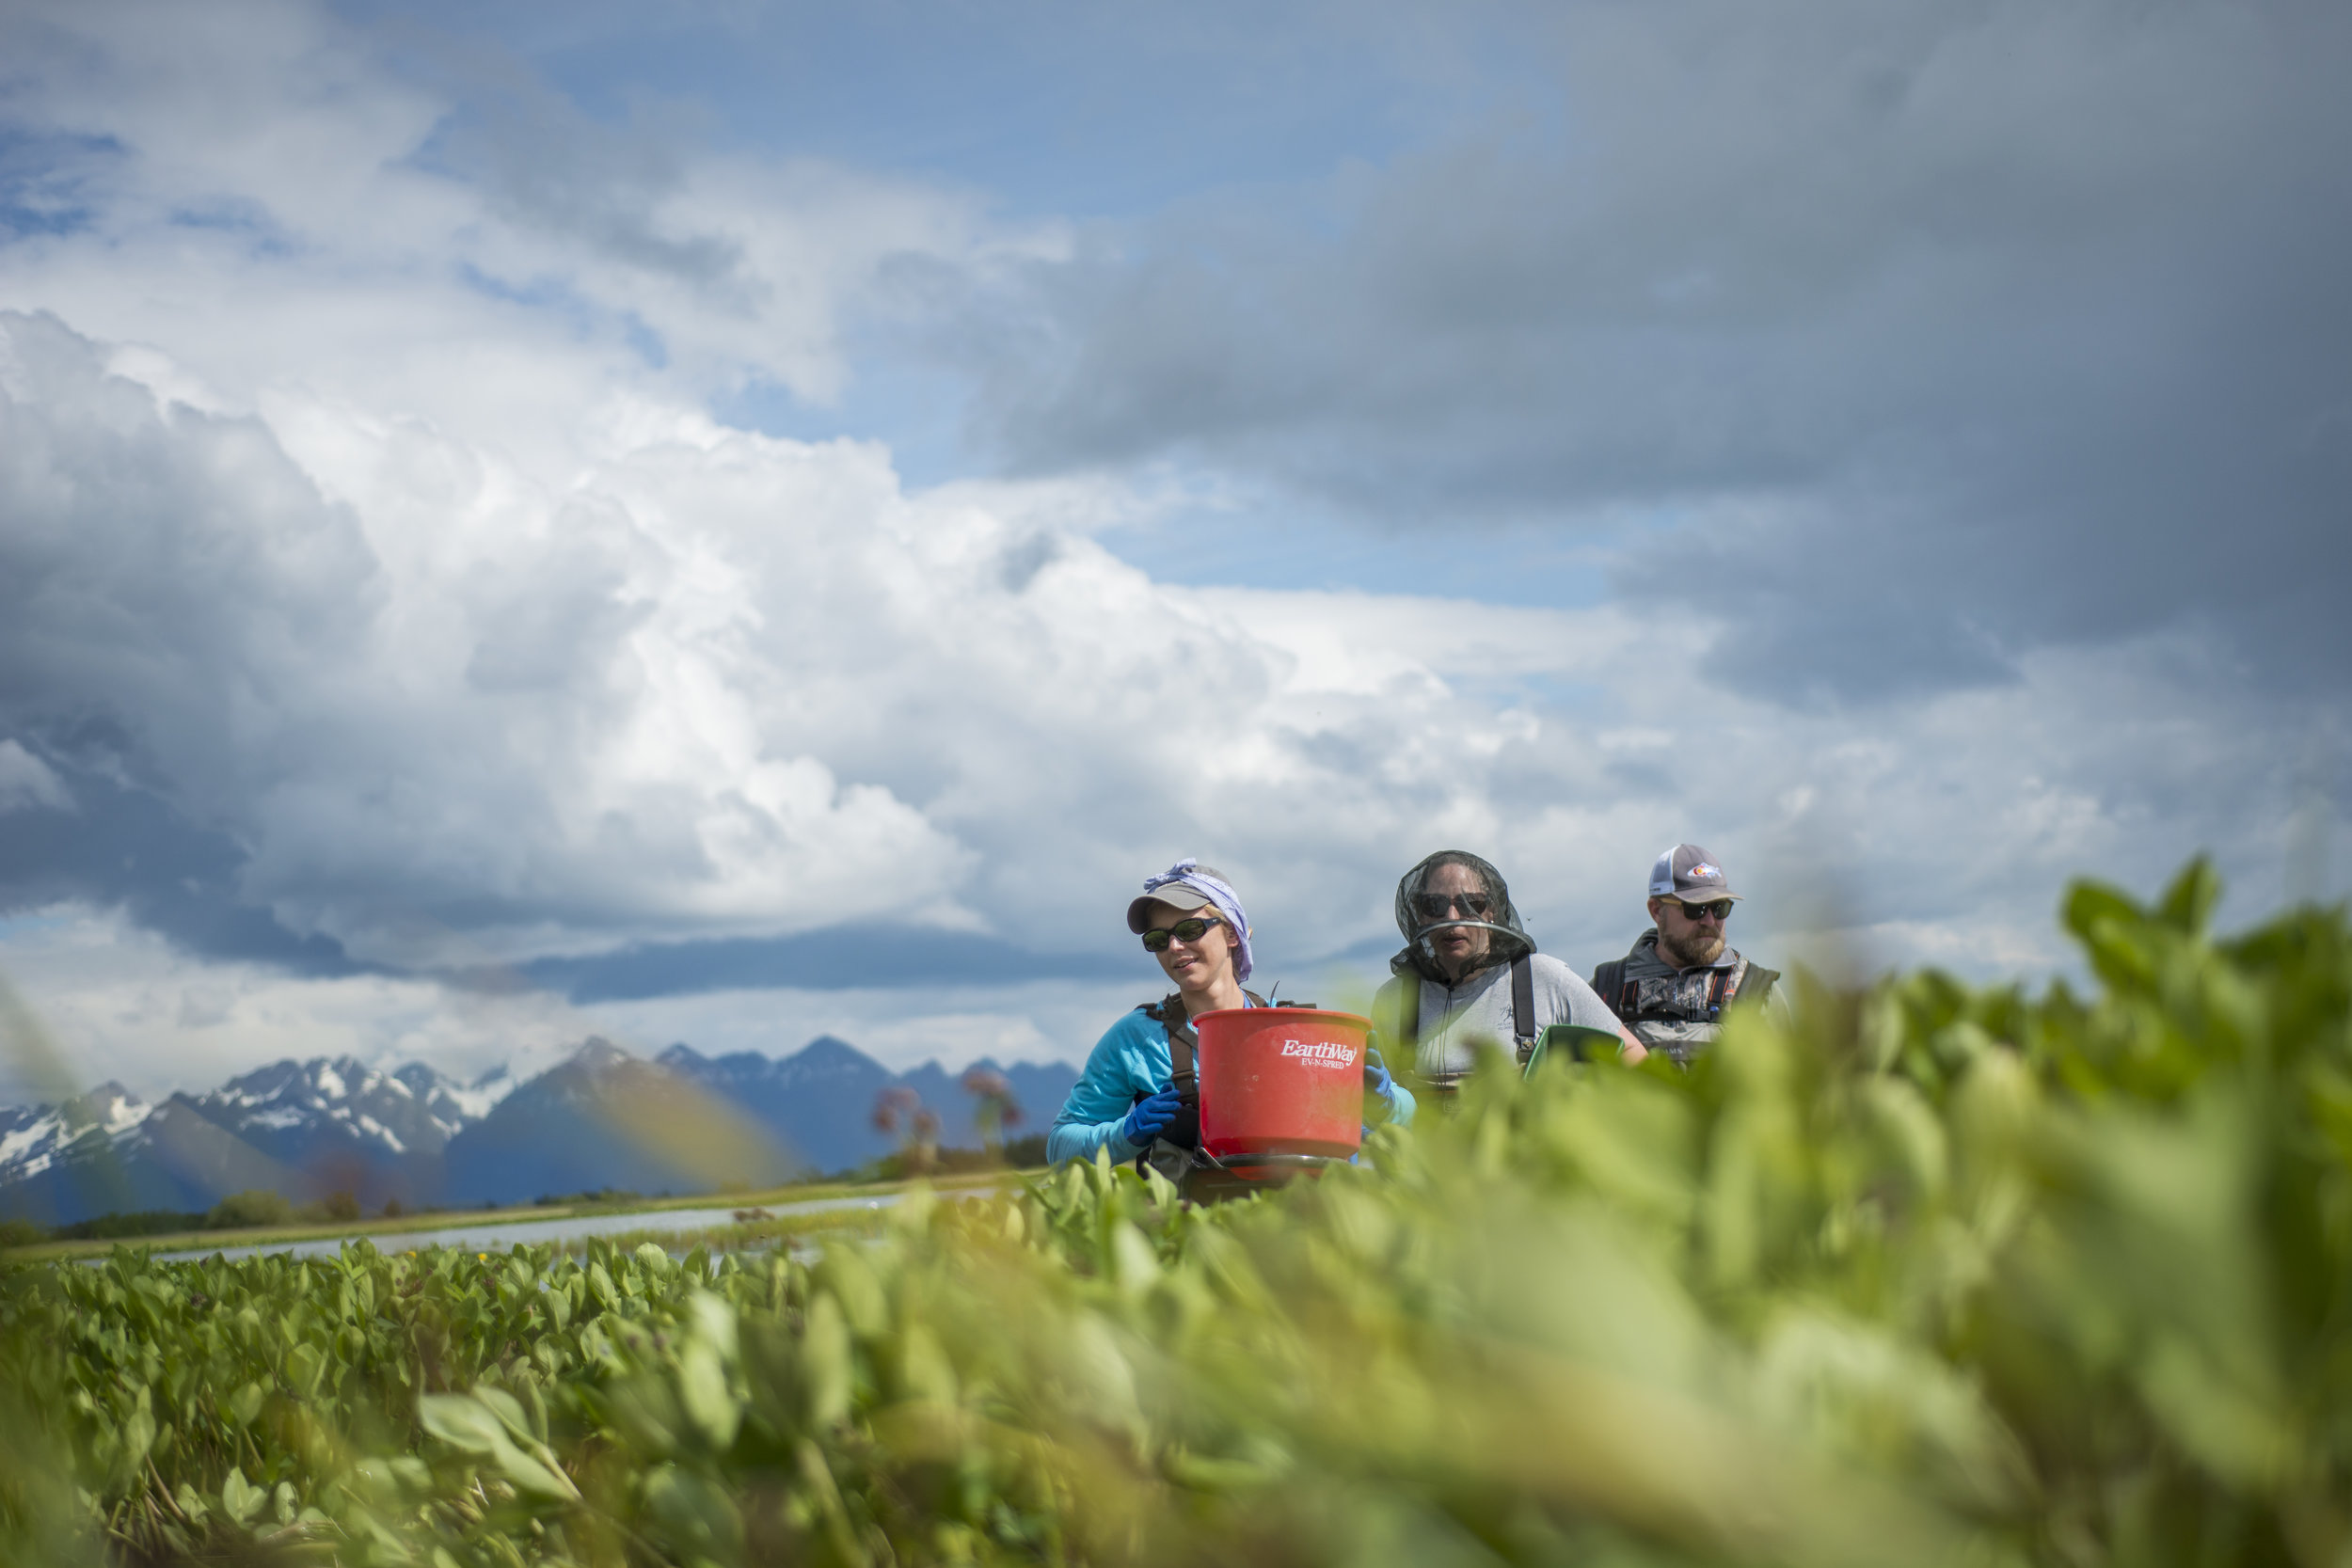 Elodea treatment is controversial in Alaska because long-term effects of both the invasive plant and eradication treatments are still unknown.